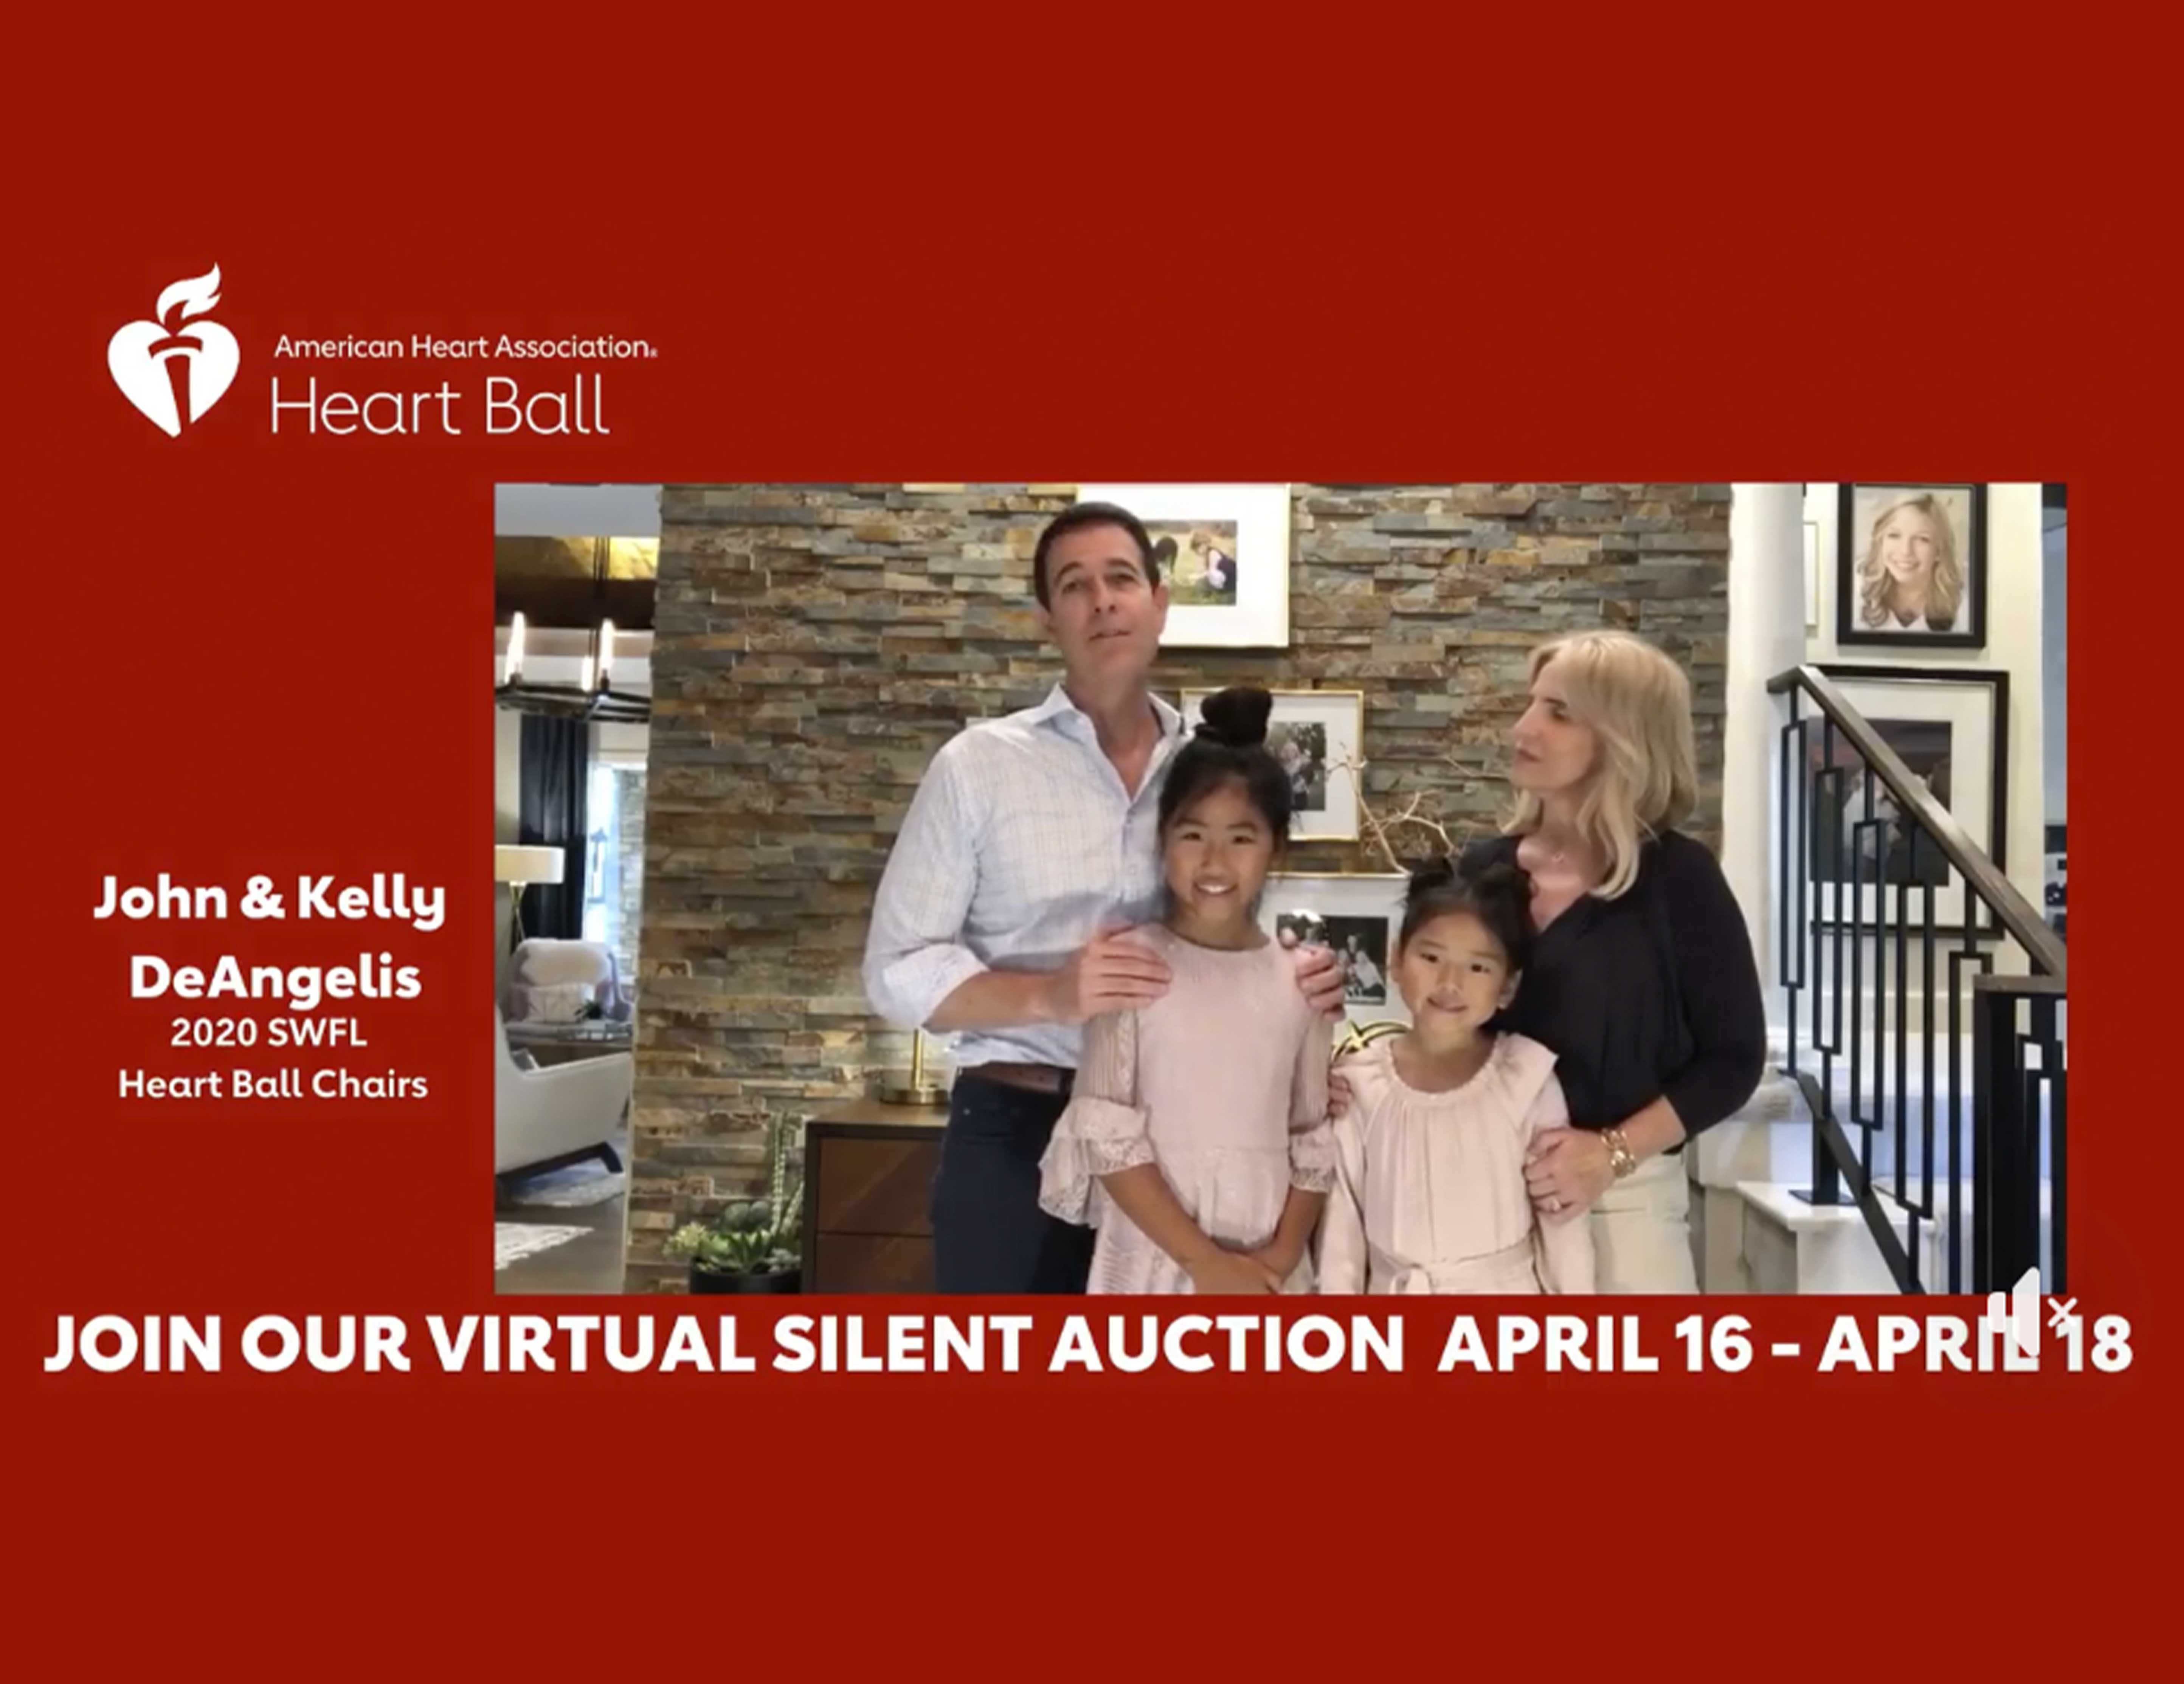 American Heart Association Heart Ball Virtual Auction